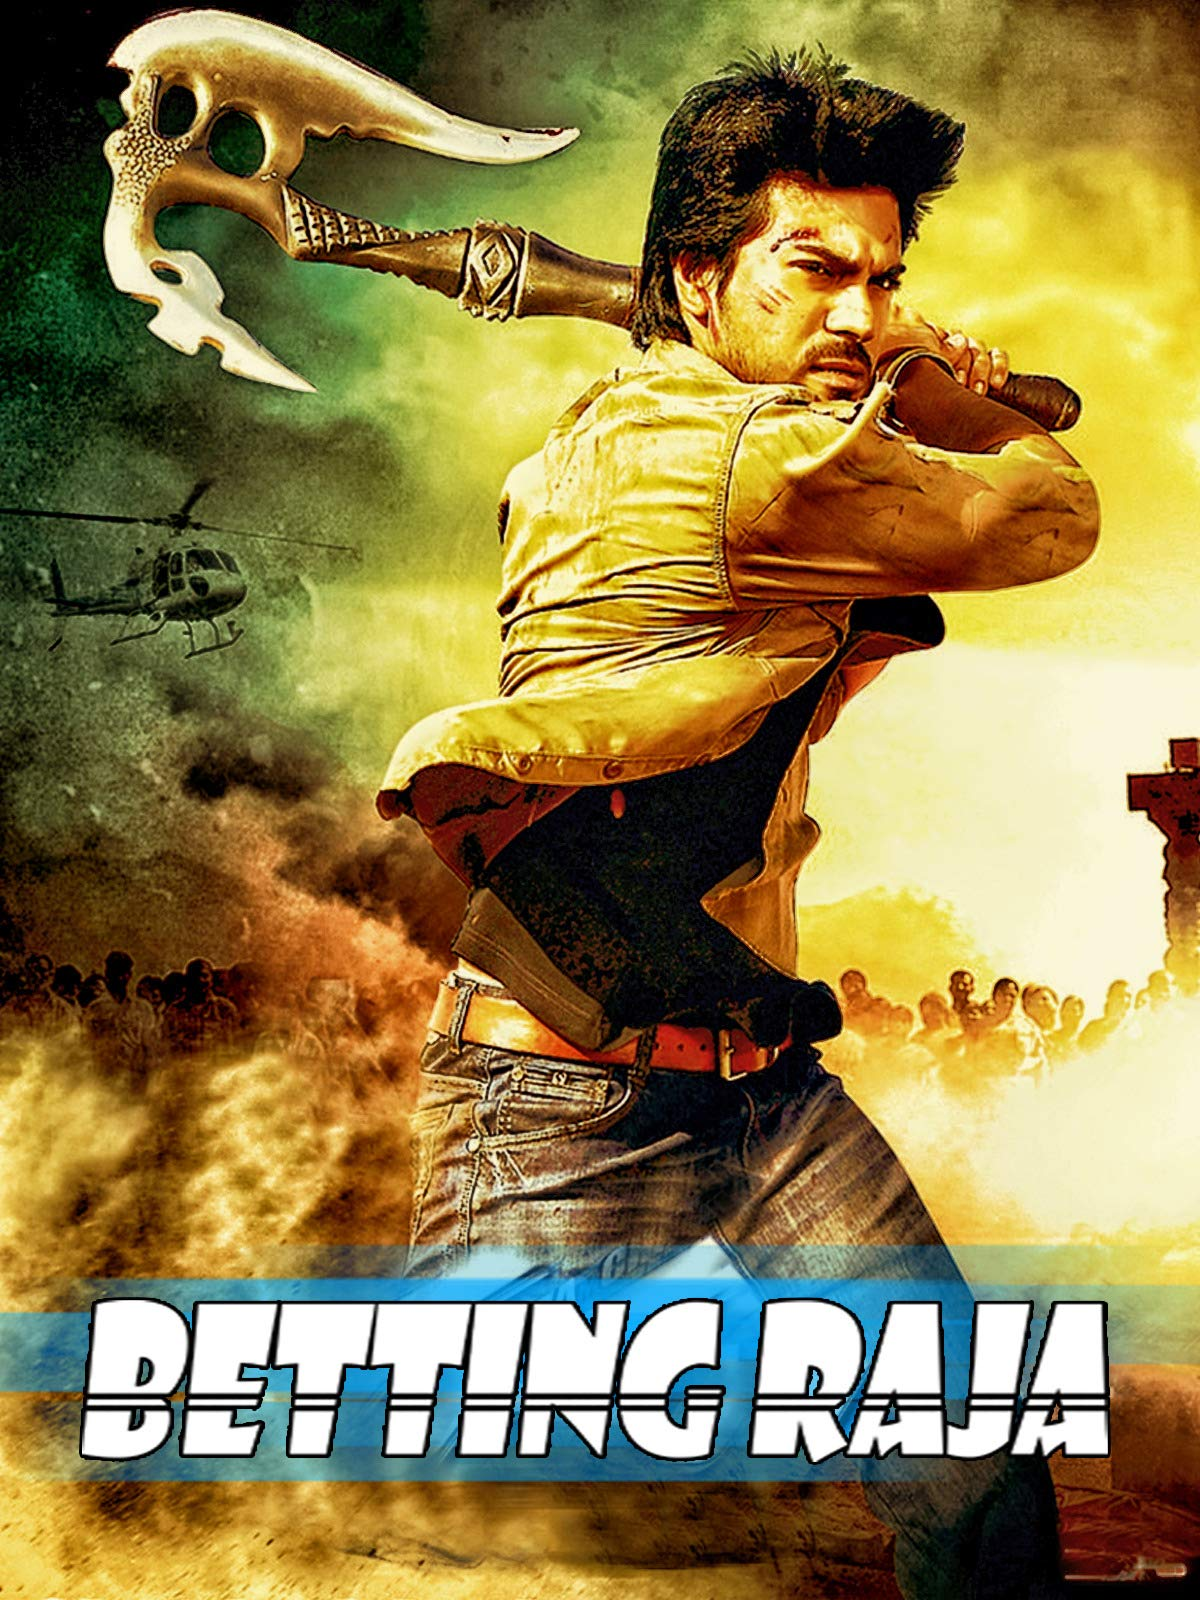 Betting raja movie images betting line national championship